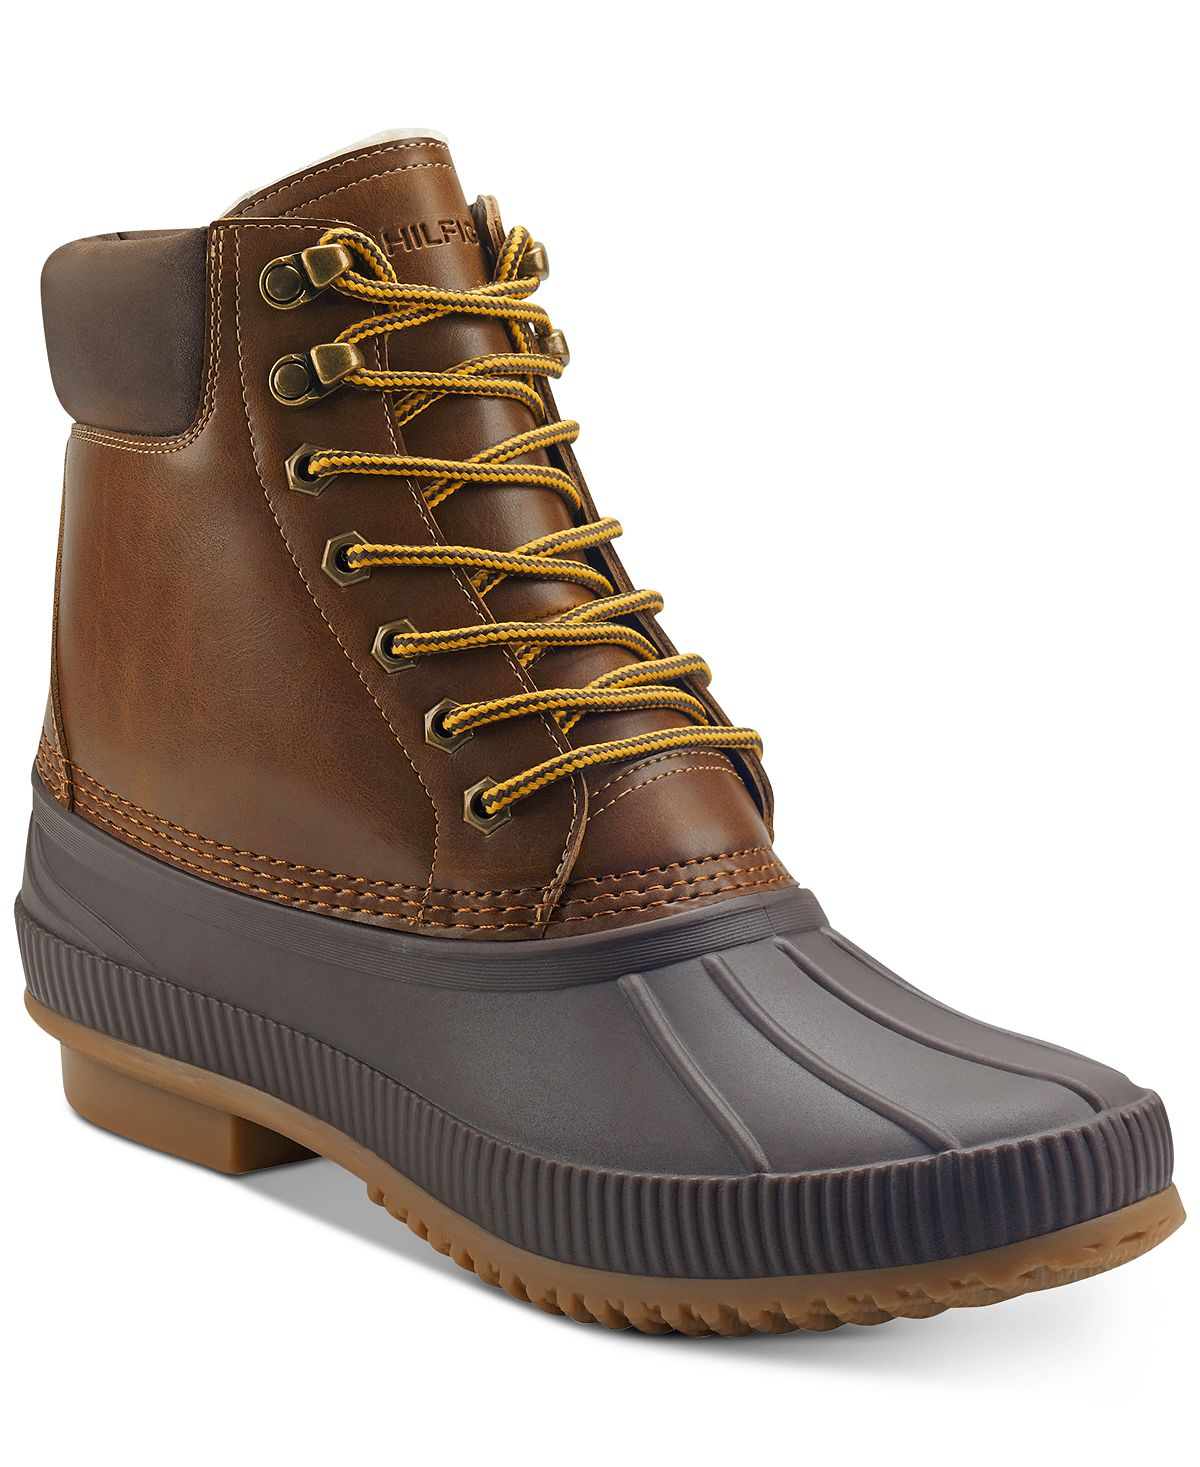 Tommy Hilfiger Colins 2 Duck Boots Dark Brown